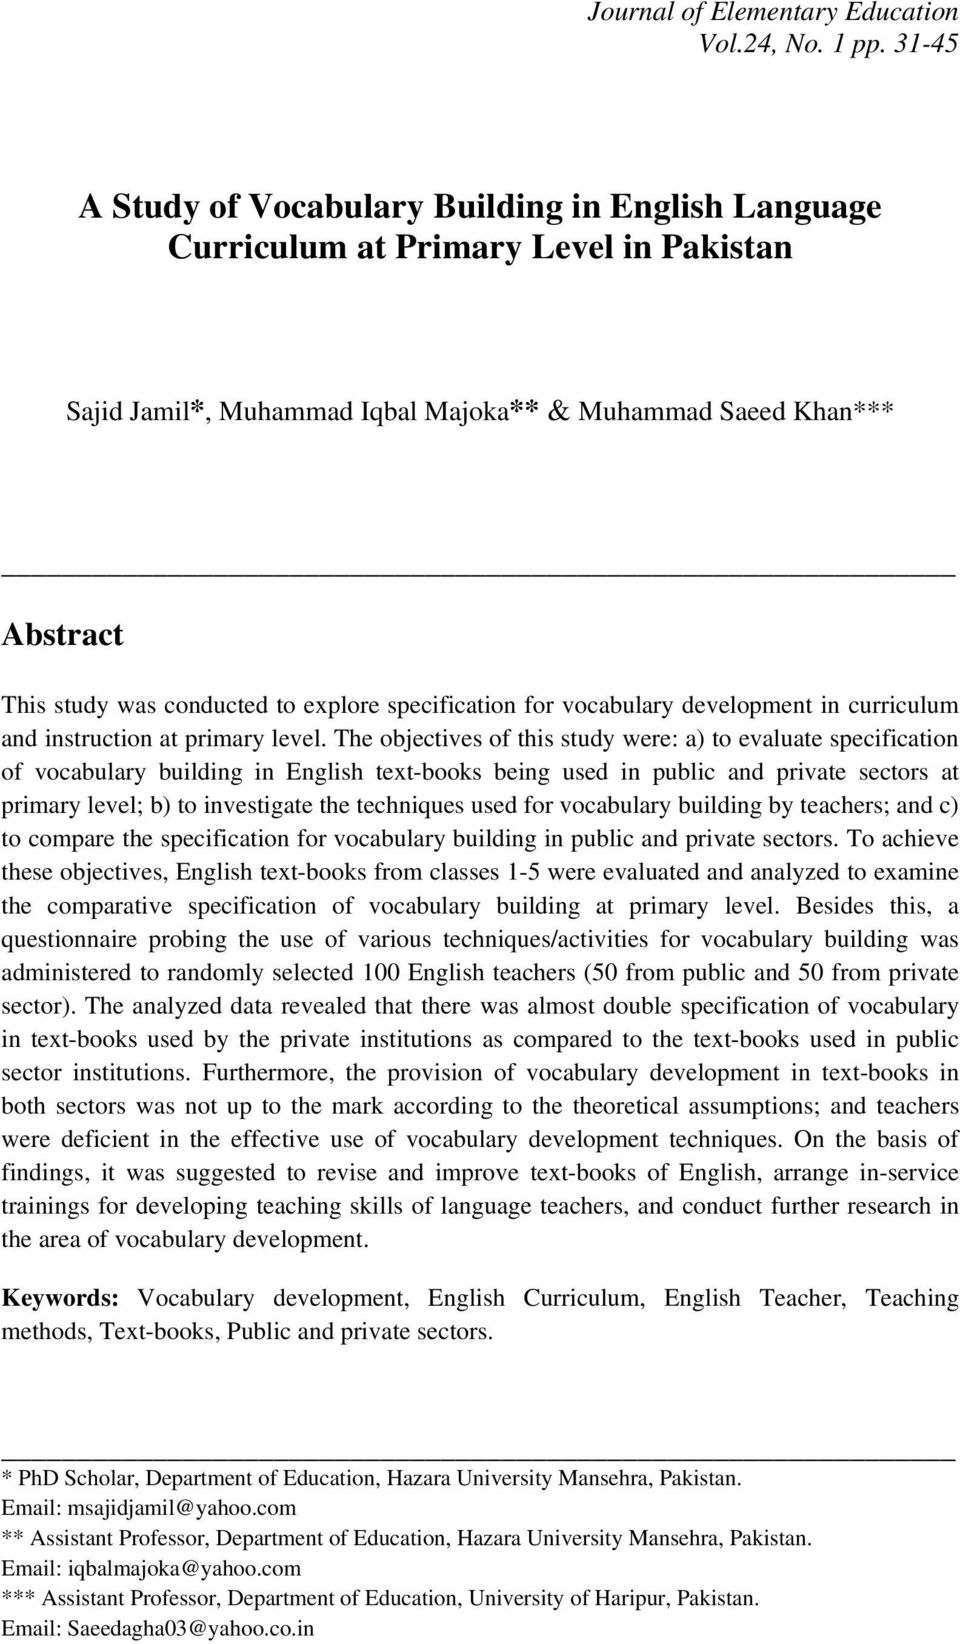 a study of vocabulary building in english language curriculum at primary level in pakistan